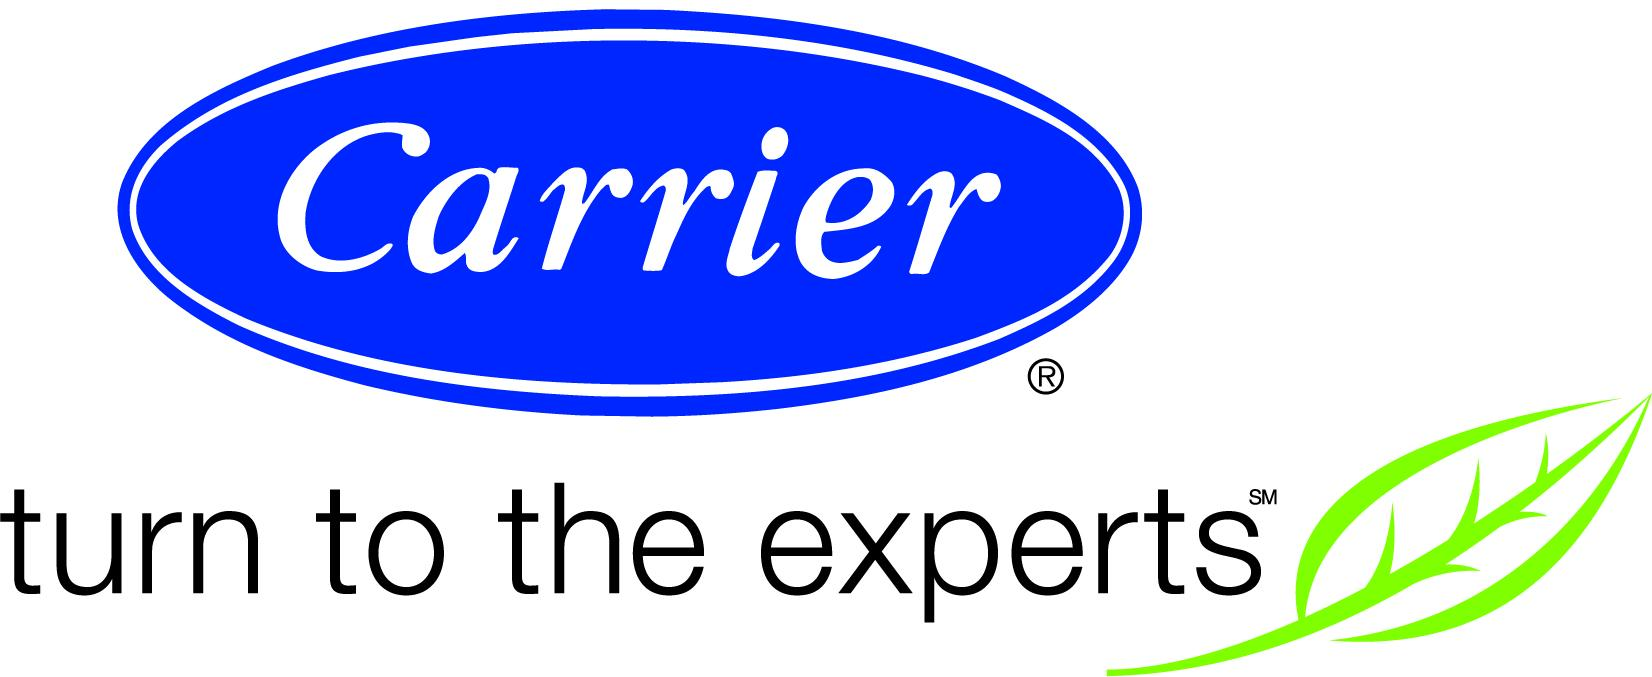 Carrier Corporation logo (opens in new window)